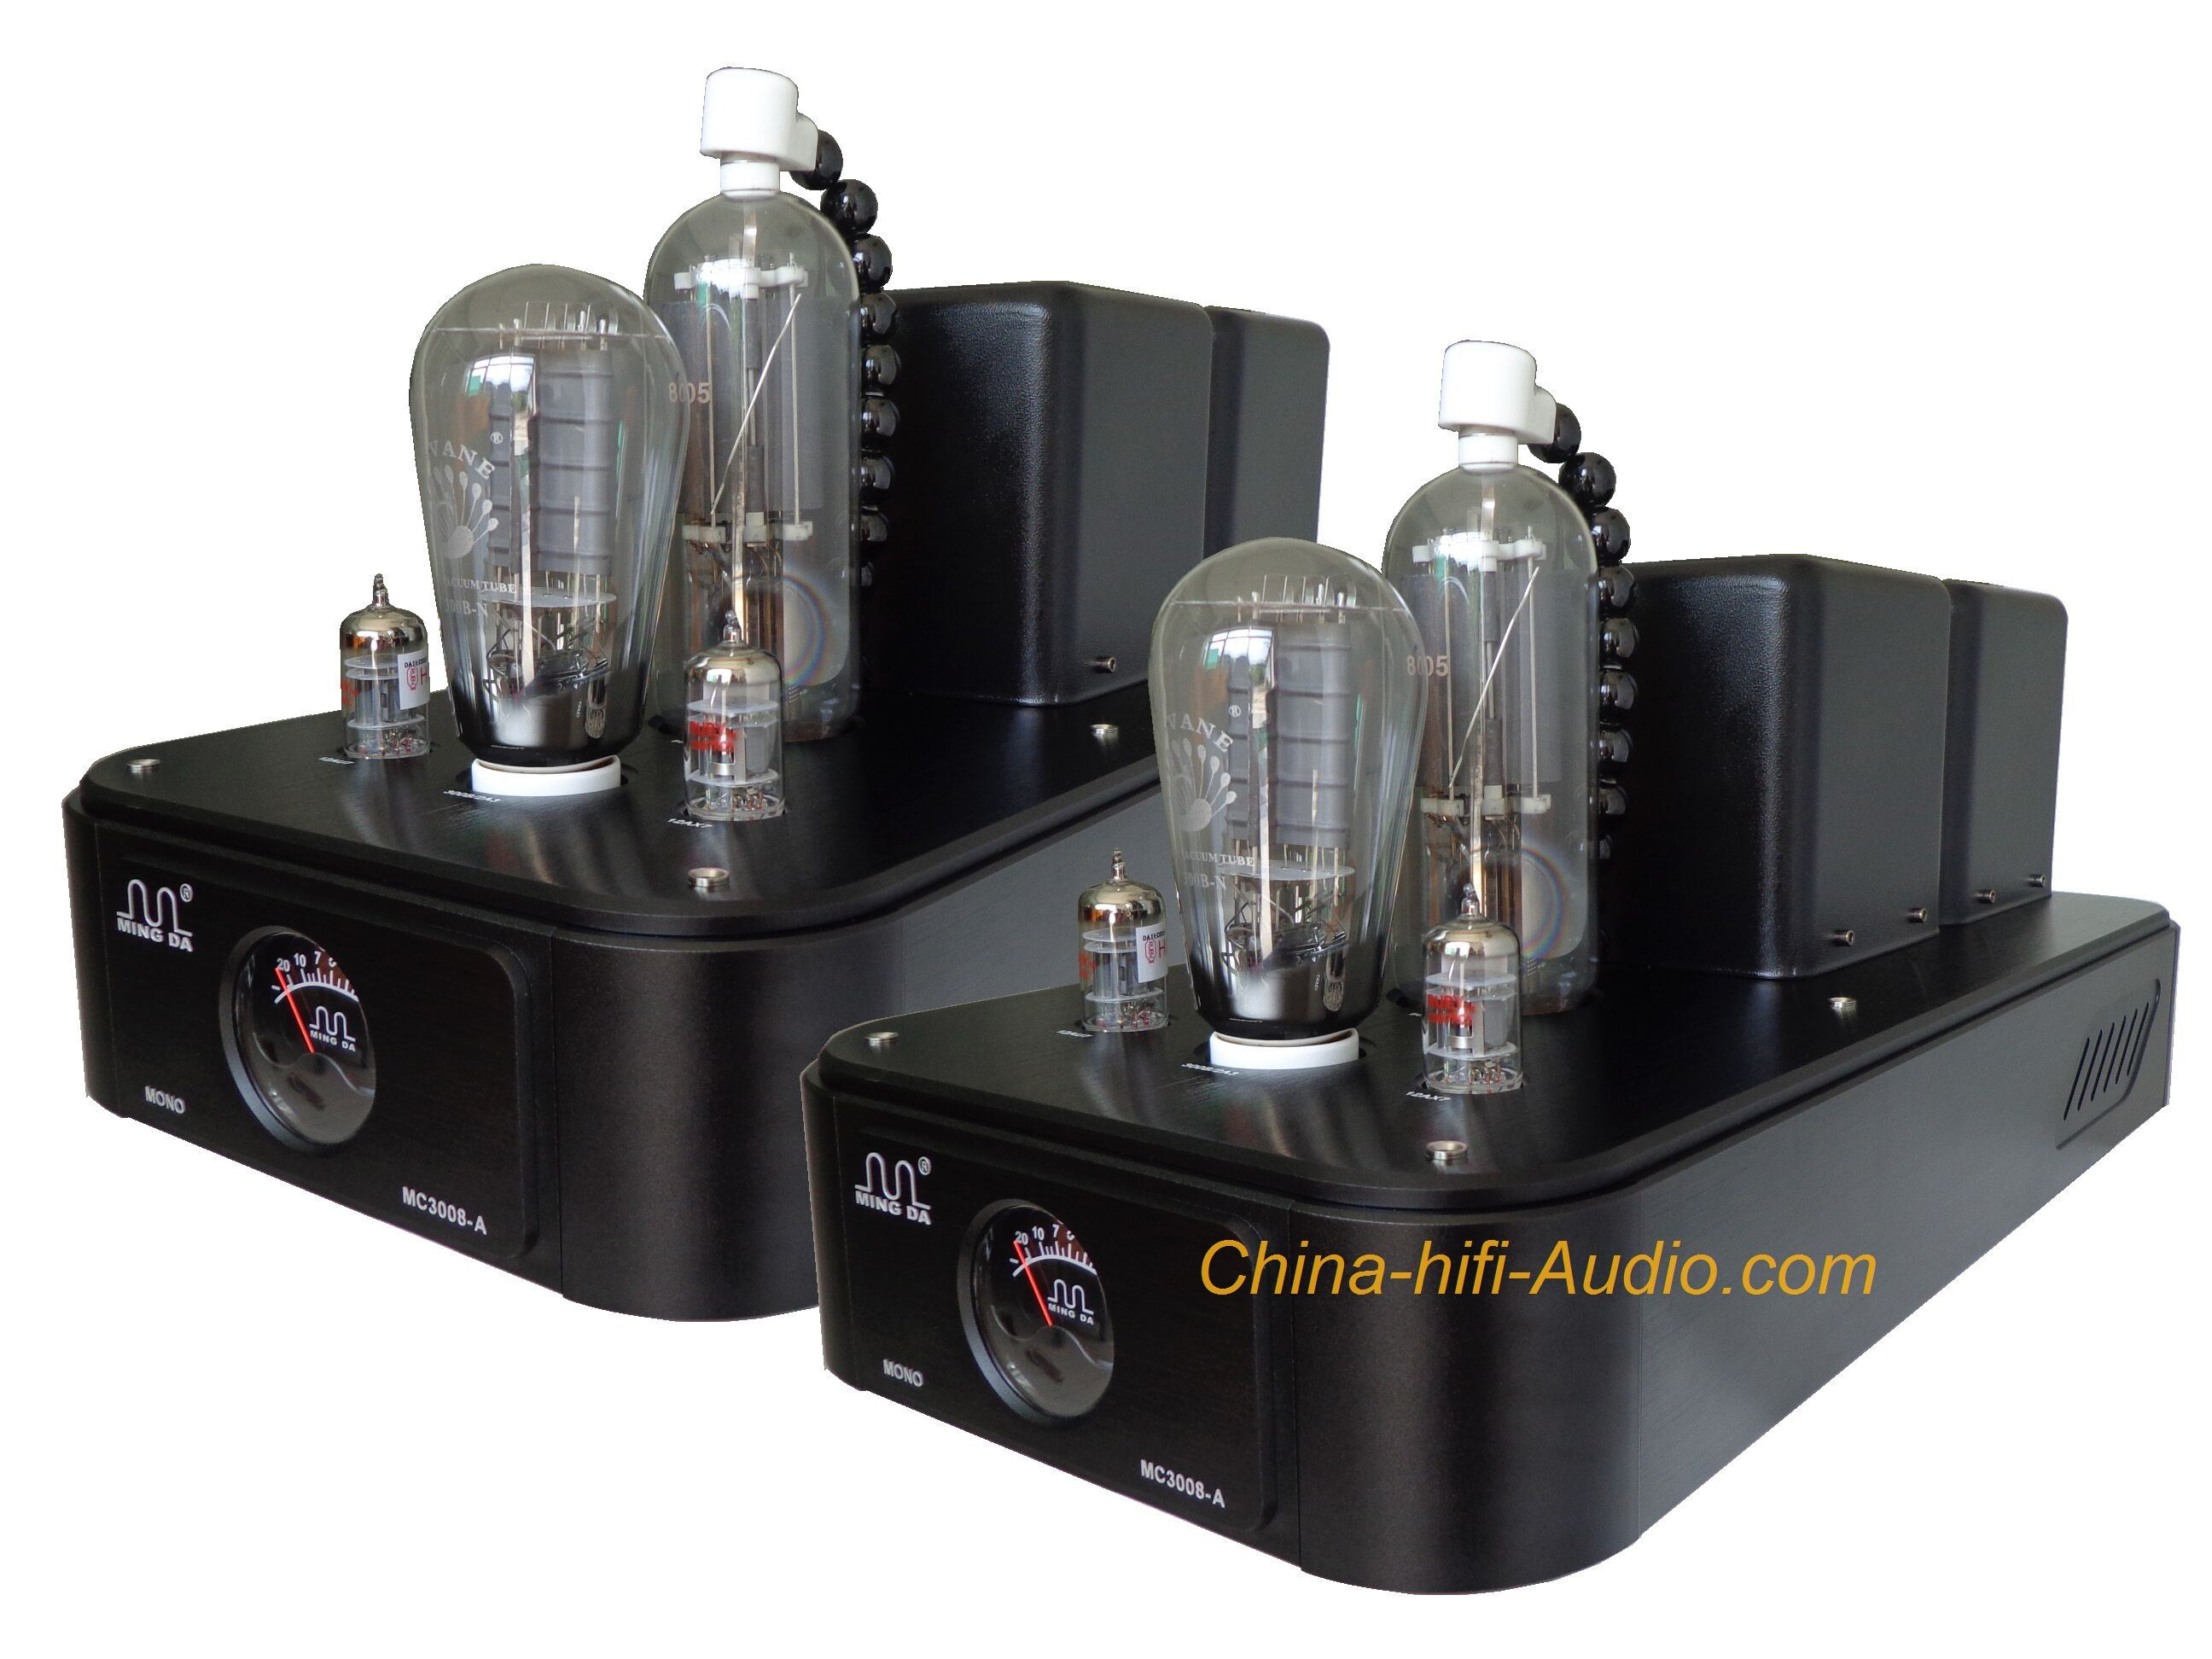 MingDa MC3008-A Class A Single-ended 300B 805 Tube Mono Block Power Amplifier